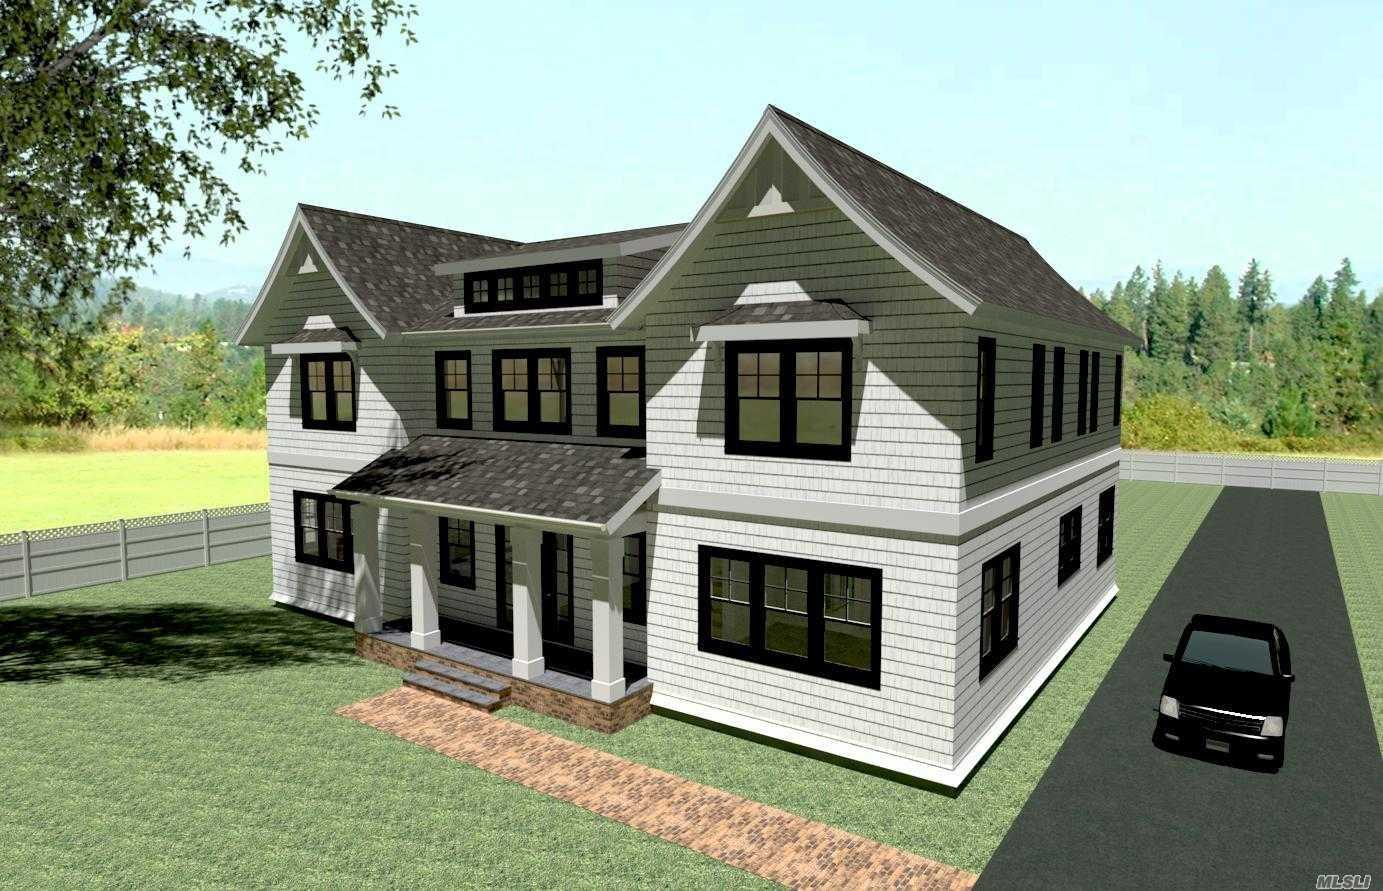 Pre-Construction Land Offering From Georgica Builders With Renderings And 7,000 Sq Ft Spec House Priced At $2,250,000. Also, Can Opt For A Custom Built New Construction Dream Home For $5,495,000